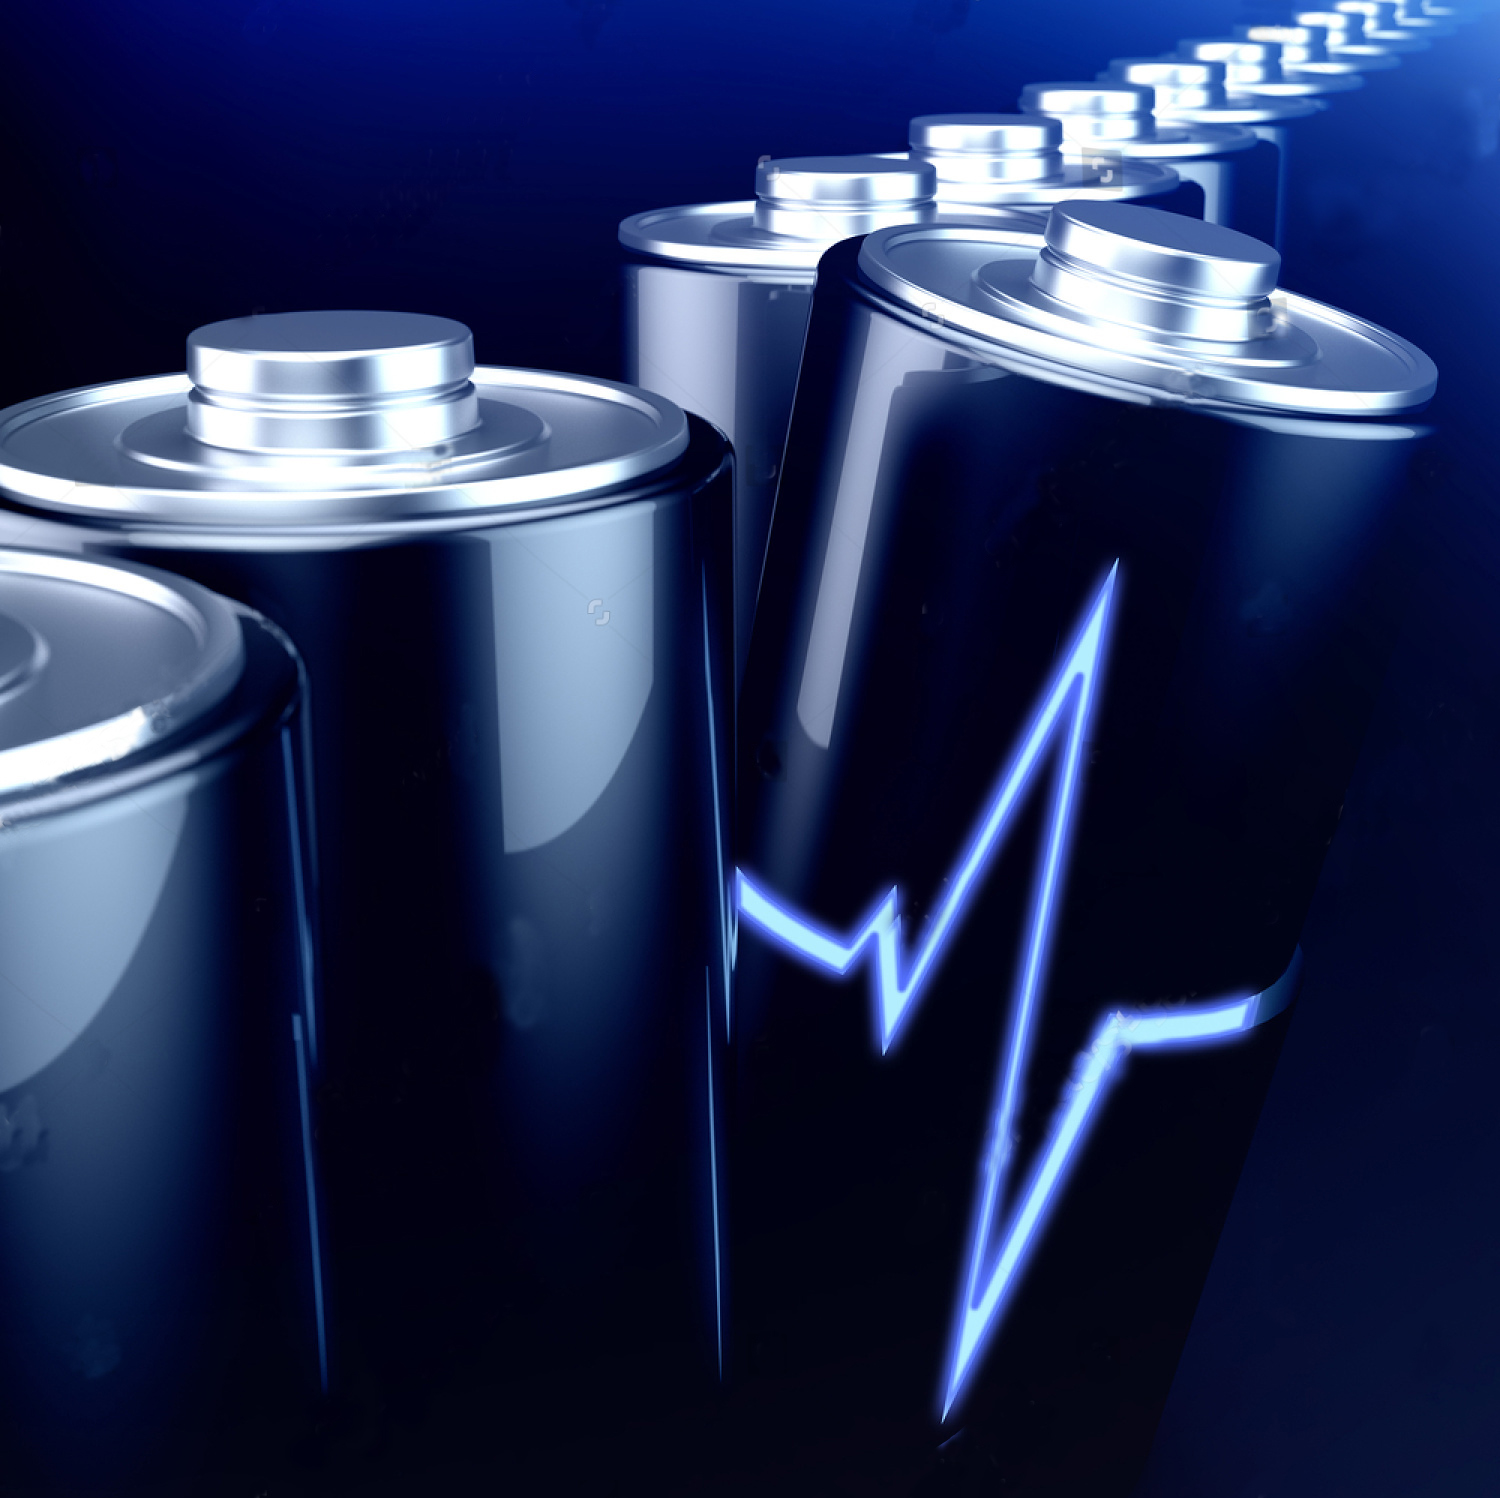 stock-photo-electrical-energy-and-power-supply-source-concept-row-of-batteries-and-one-accumulator-battery-506790421A.jpg